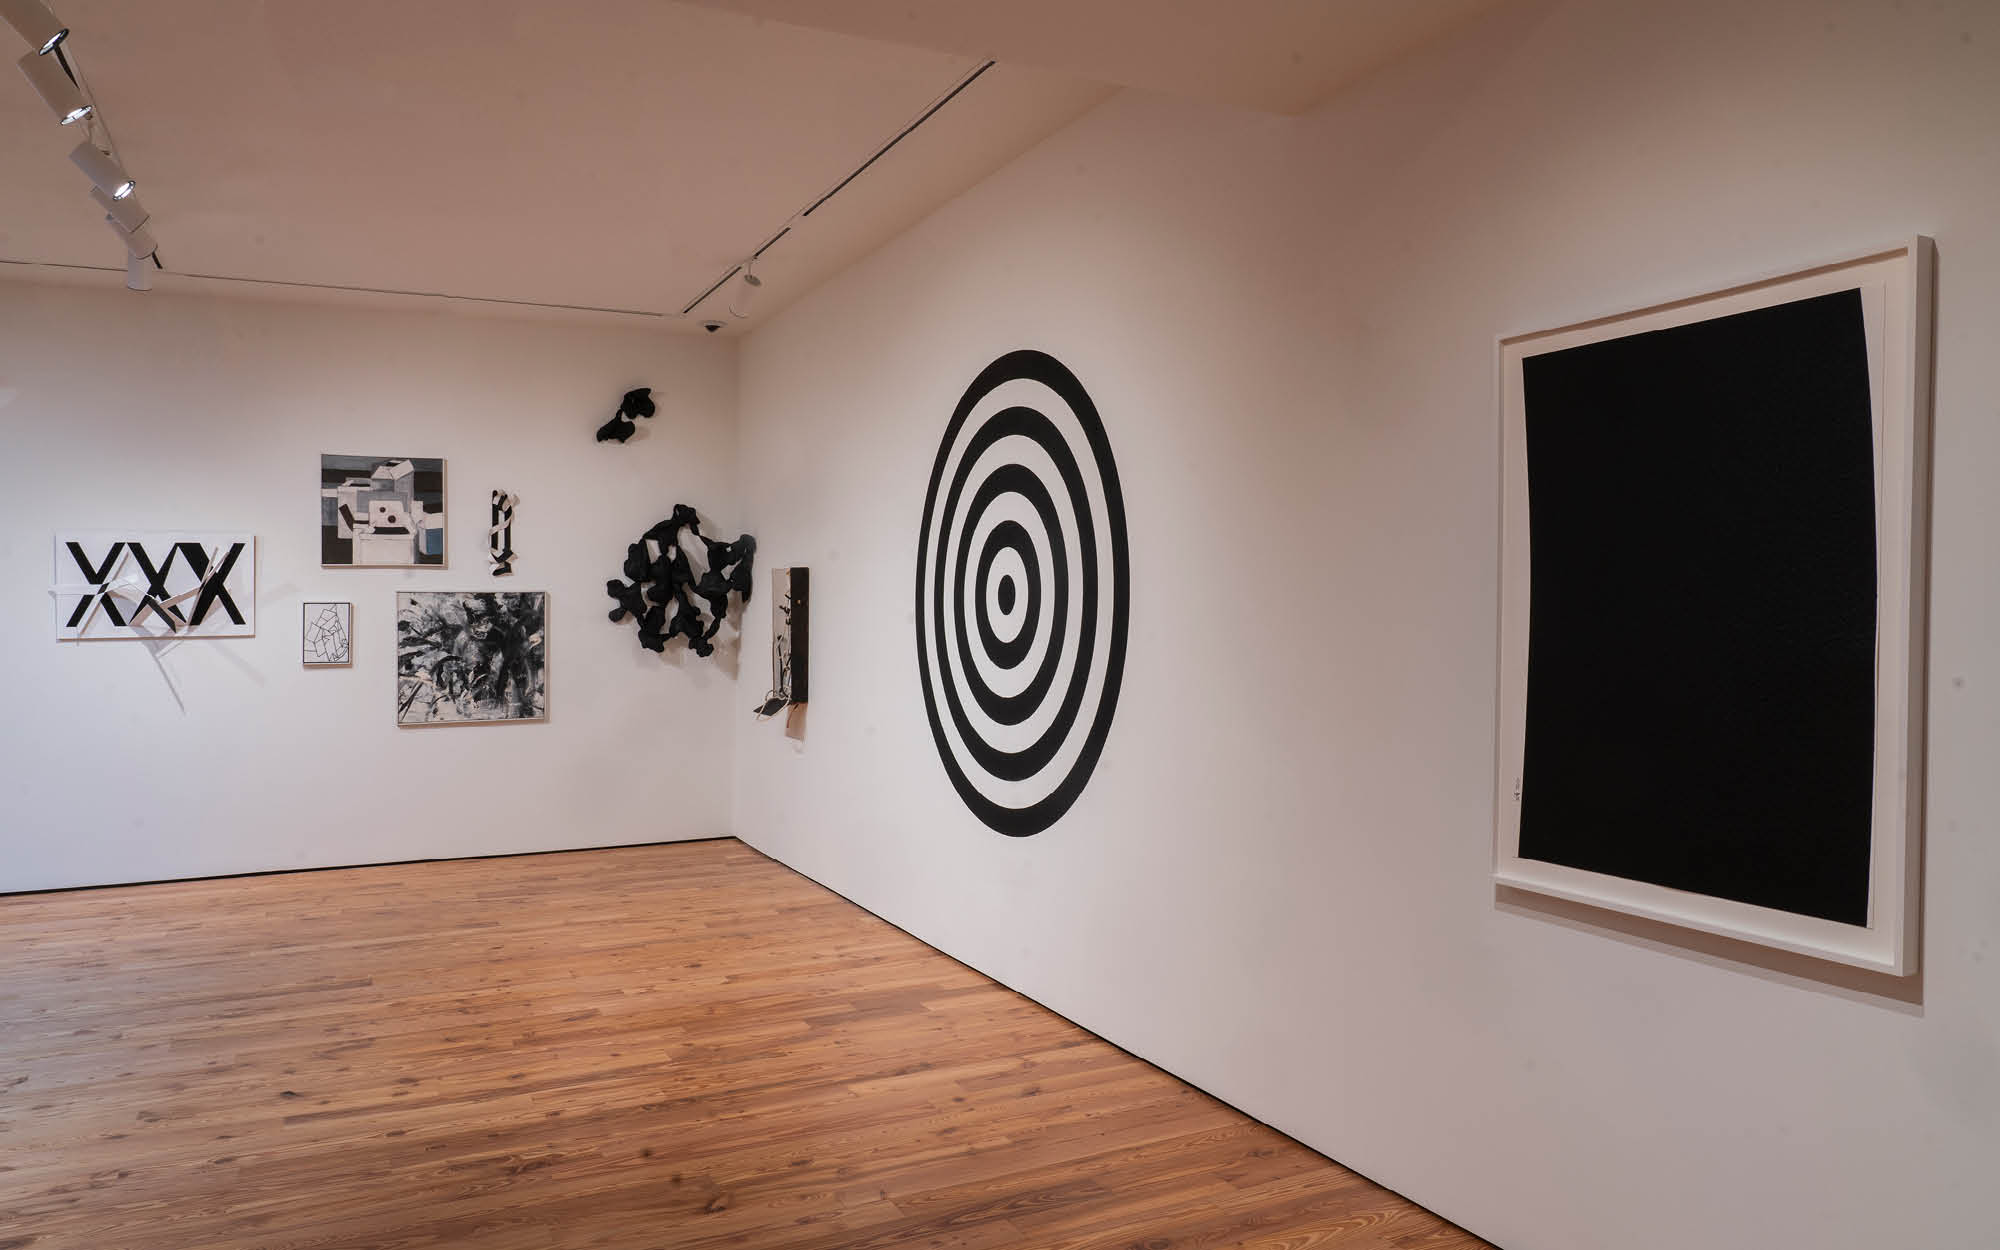 Color. Theory. & (b/w)'s North Gallery featuring work by Robert Barber, Dave Lewis, and Richard Serra